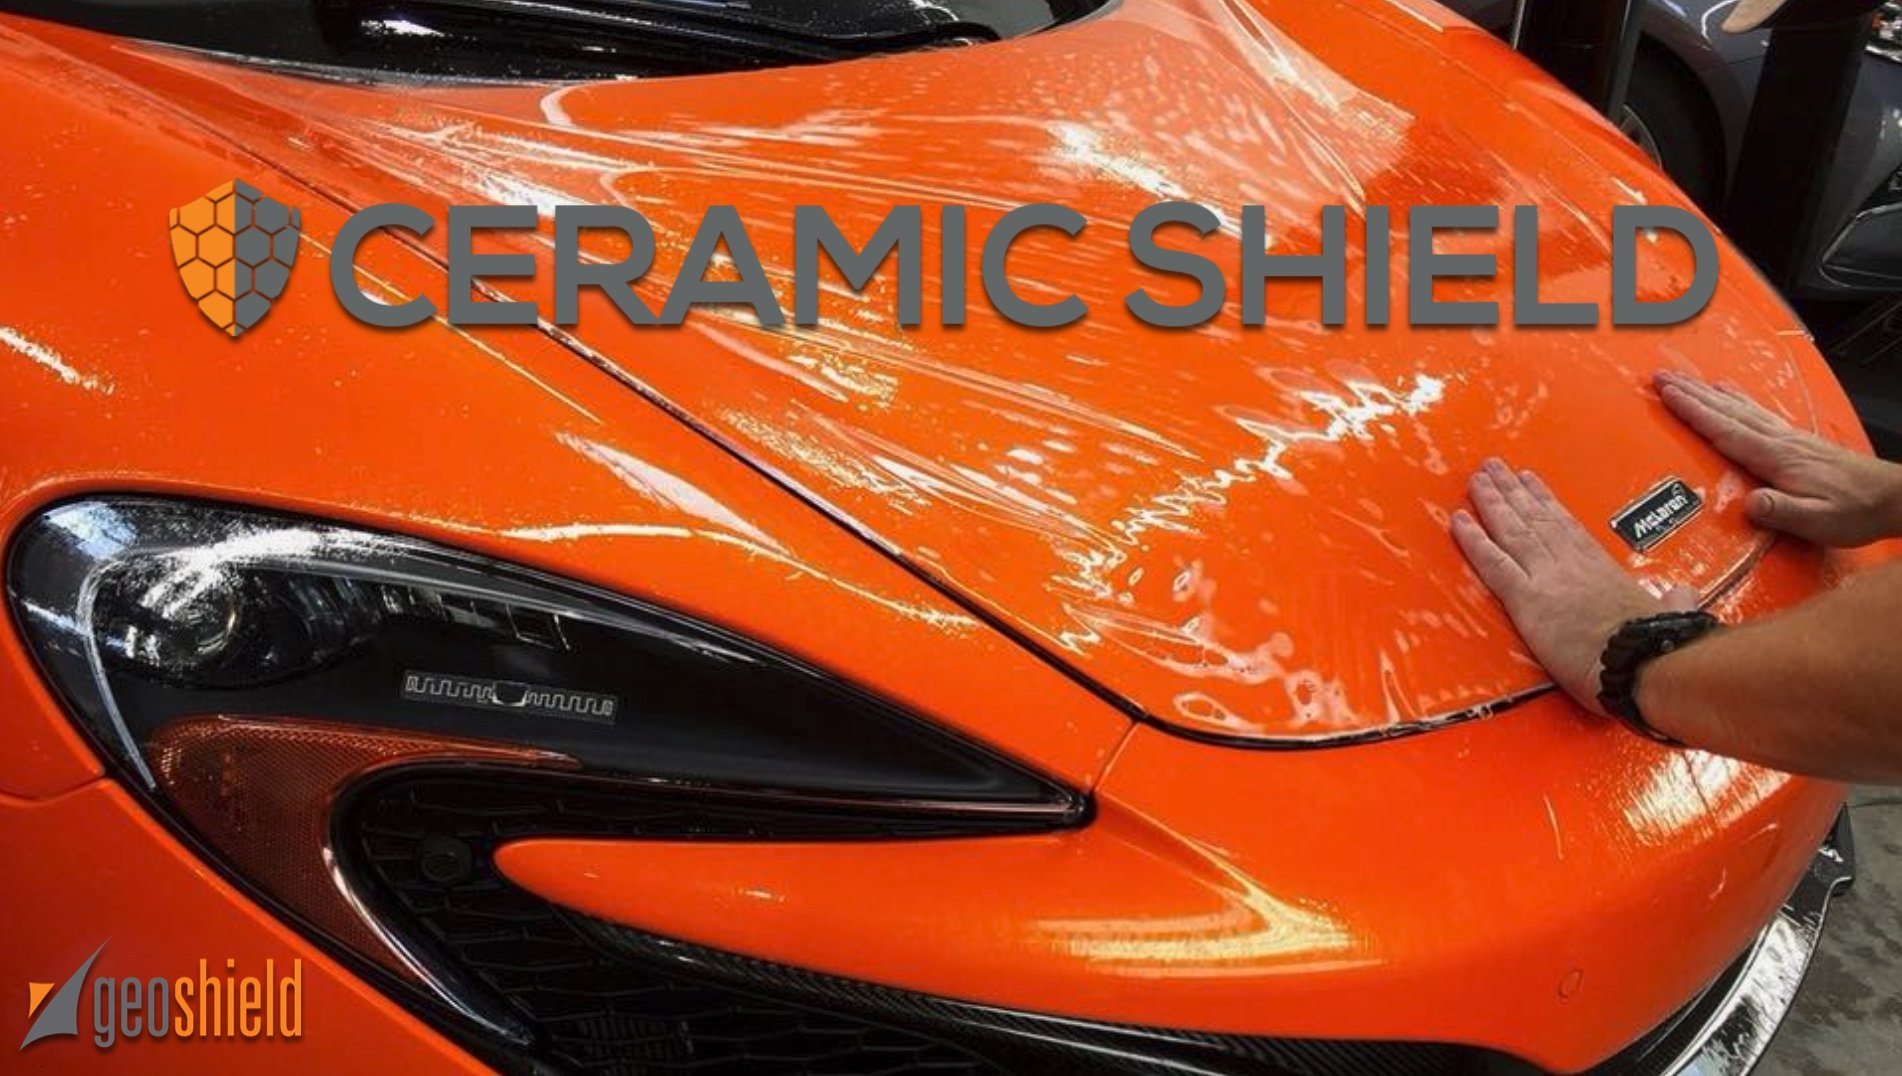 Geoshield Ceramic Elixir Coating